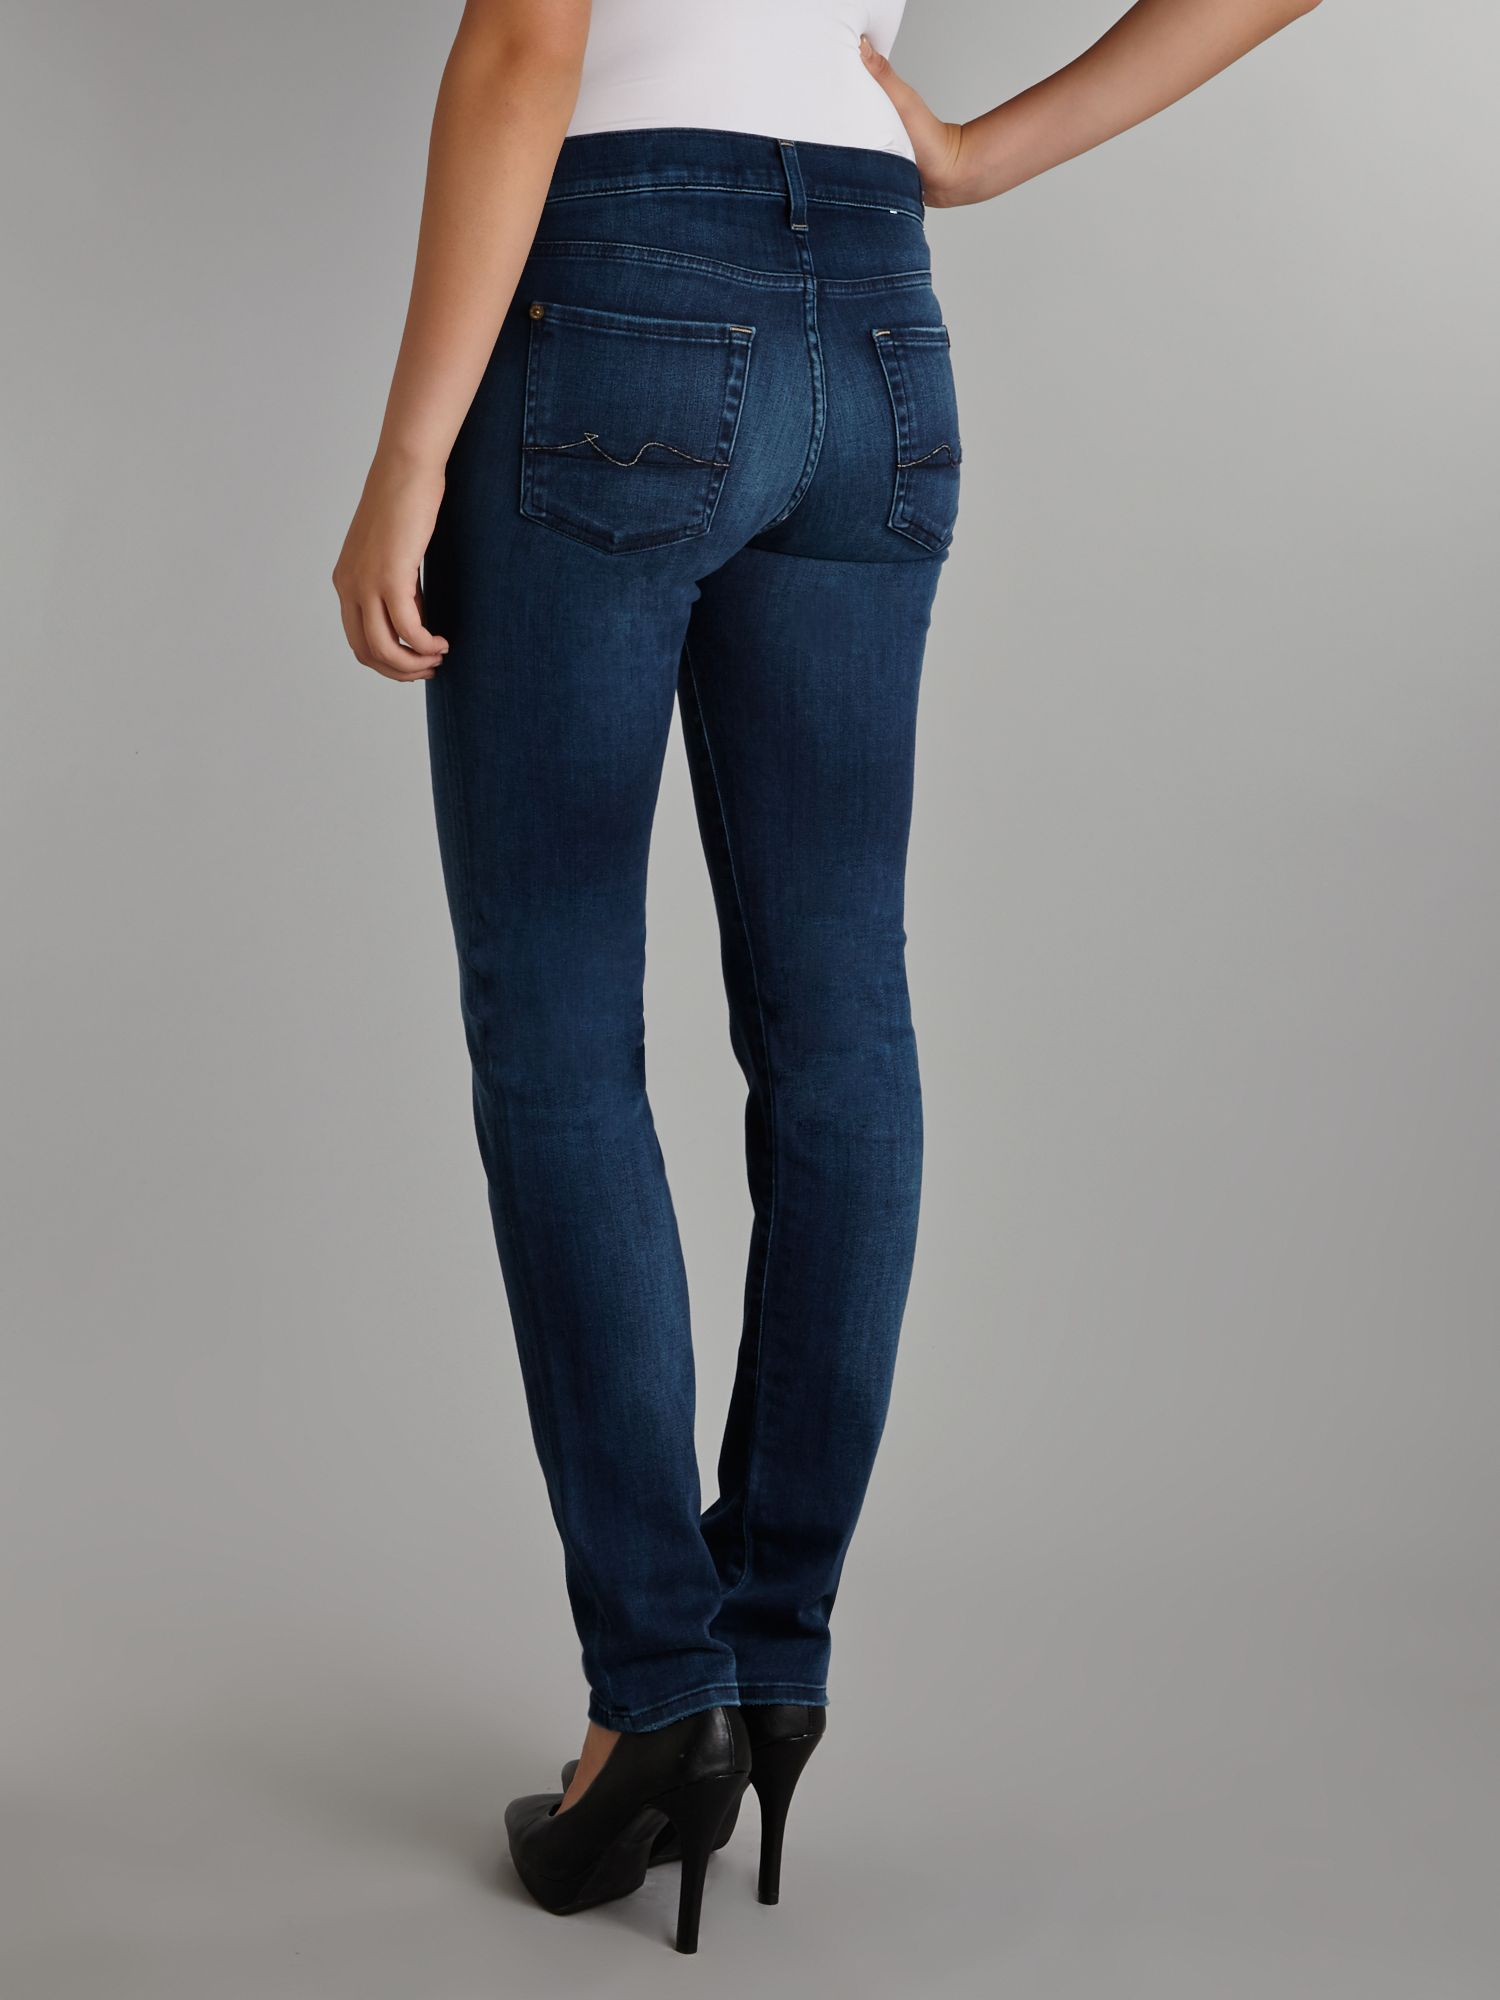 7 for all mankind Rozie Highrise Slim Jeans in Deep Sky Fall in ...